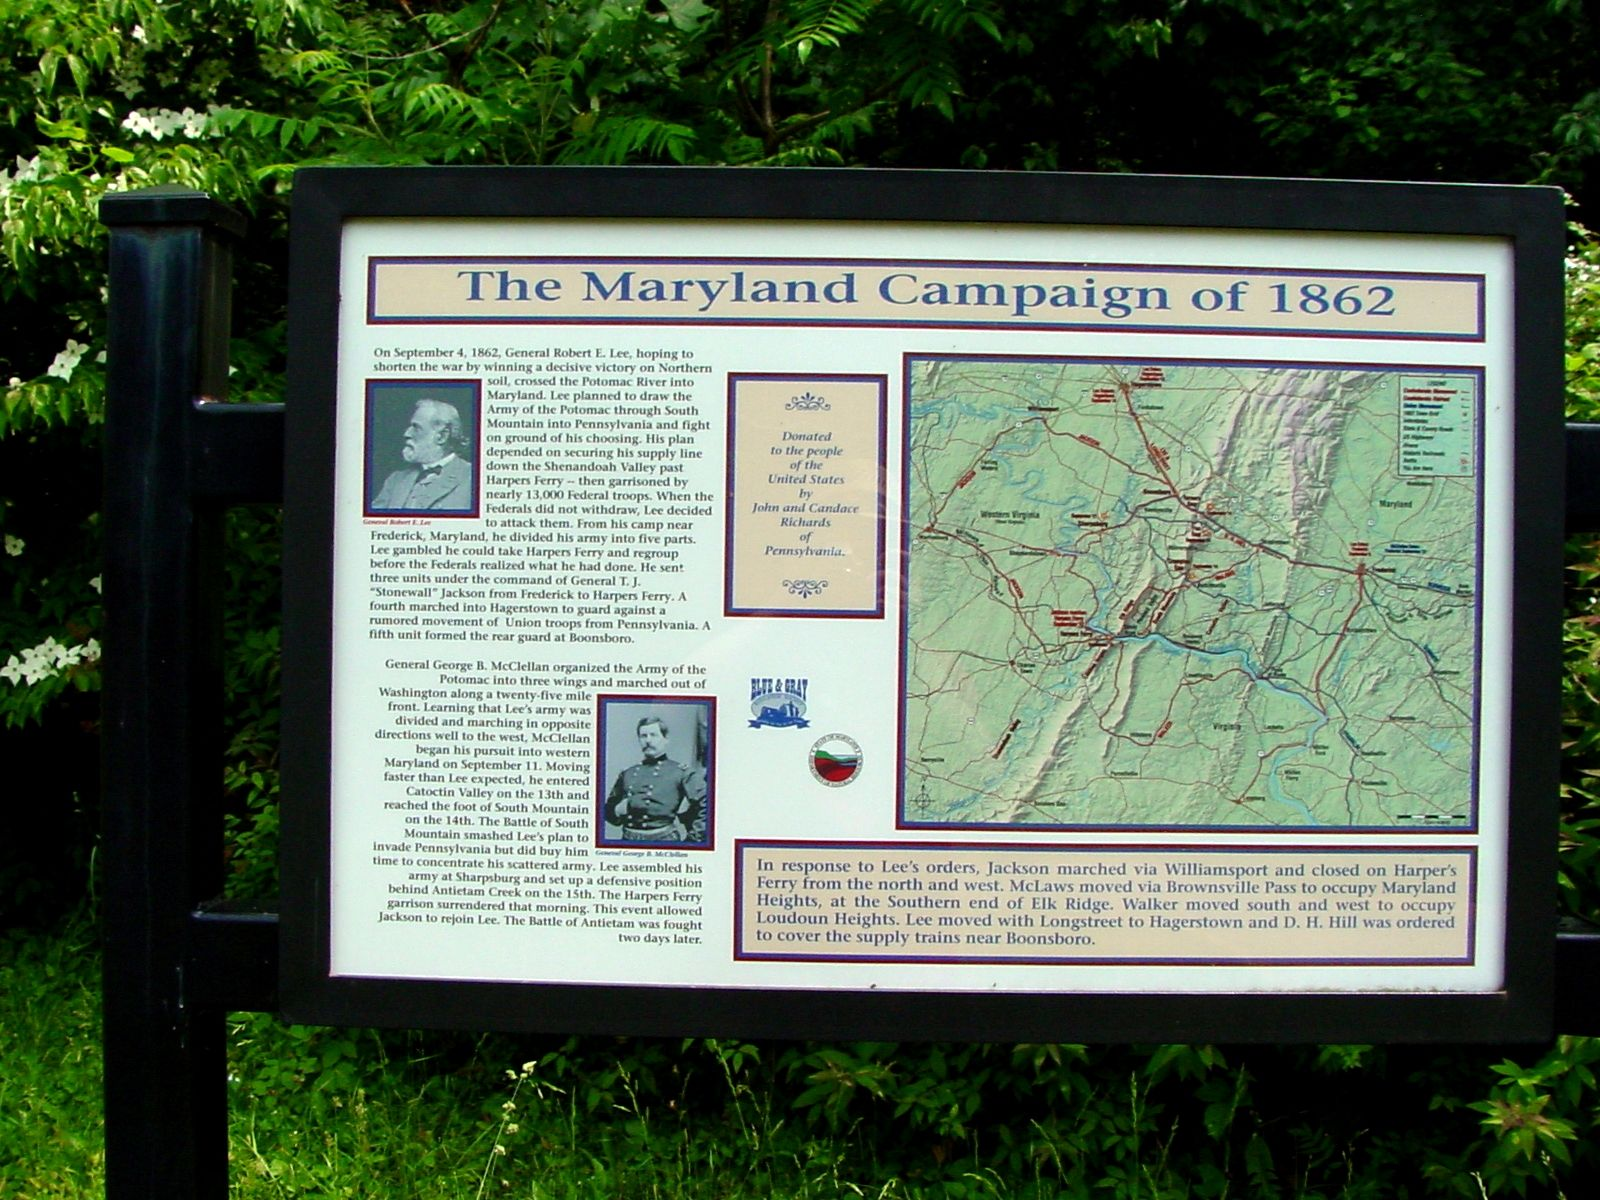 The Maryland Campaign of 1862 Marker